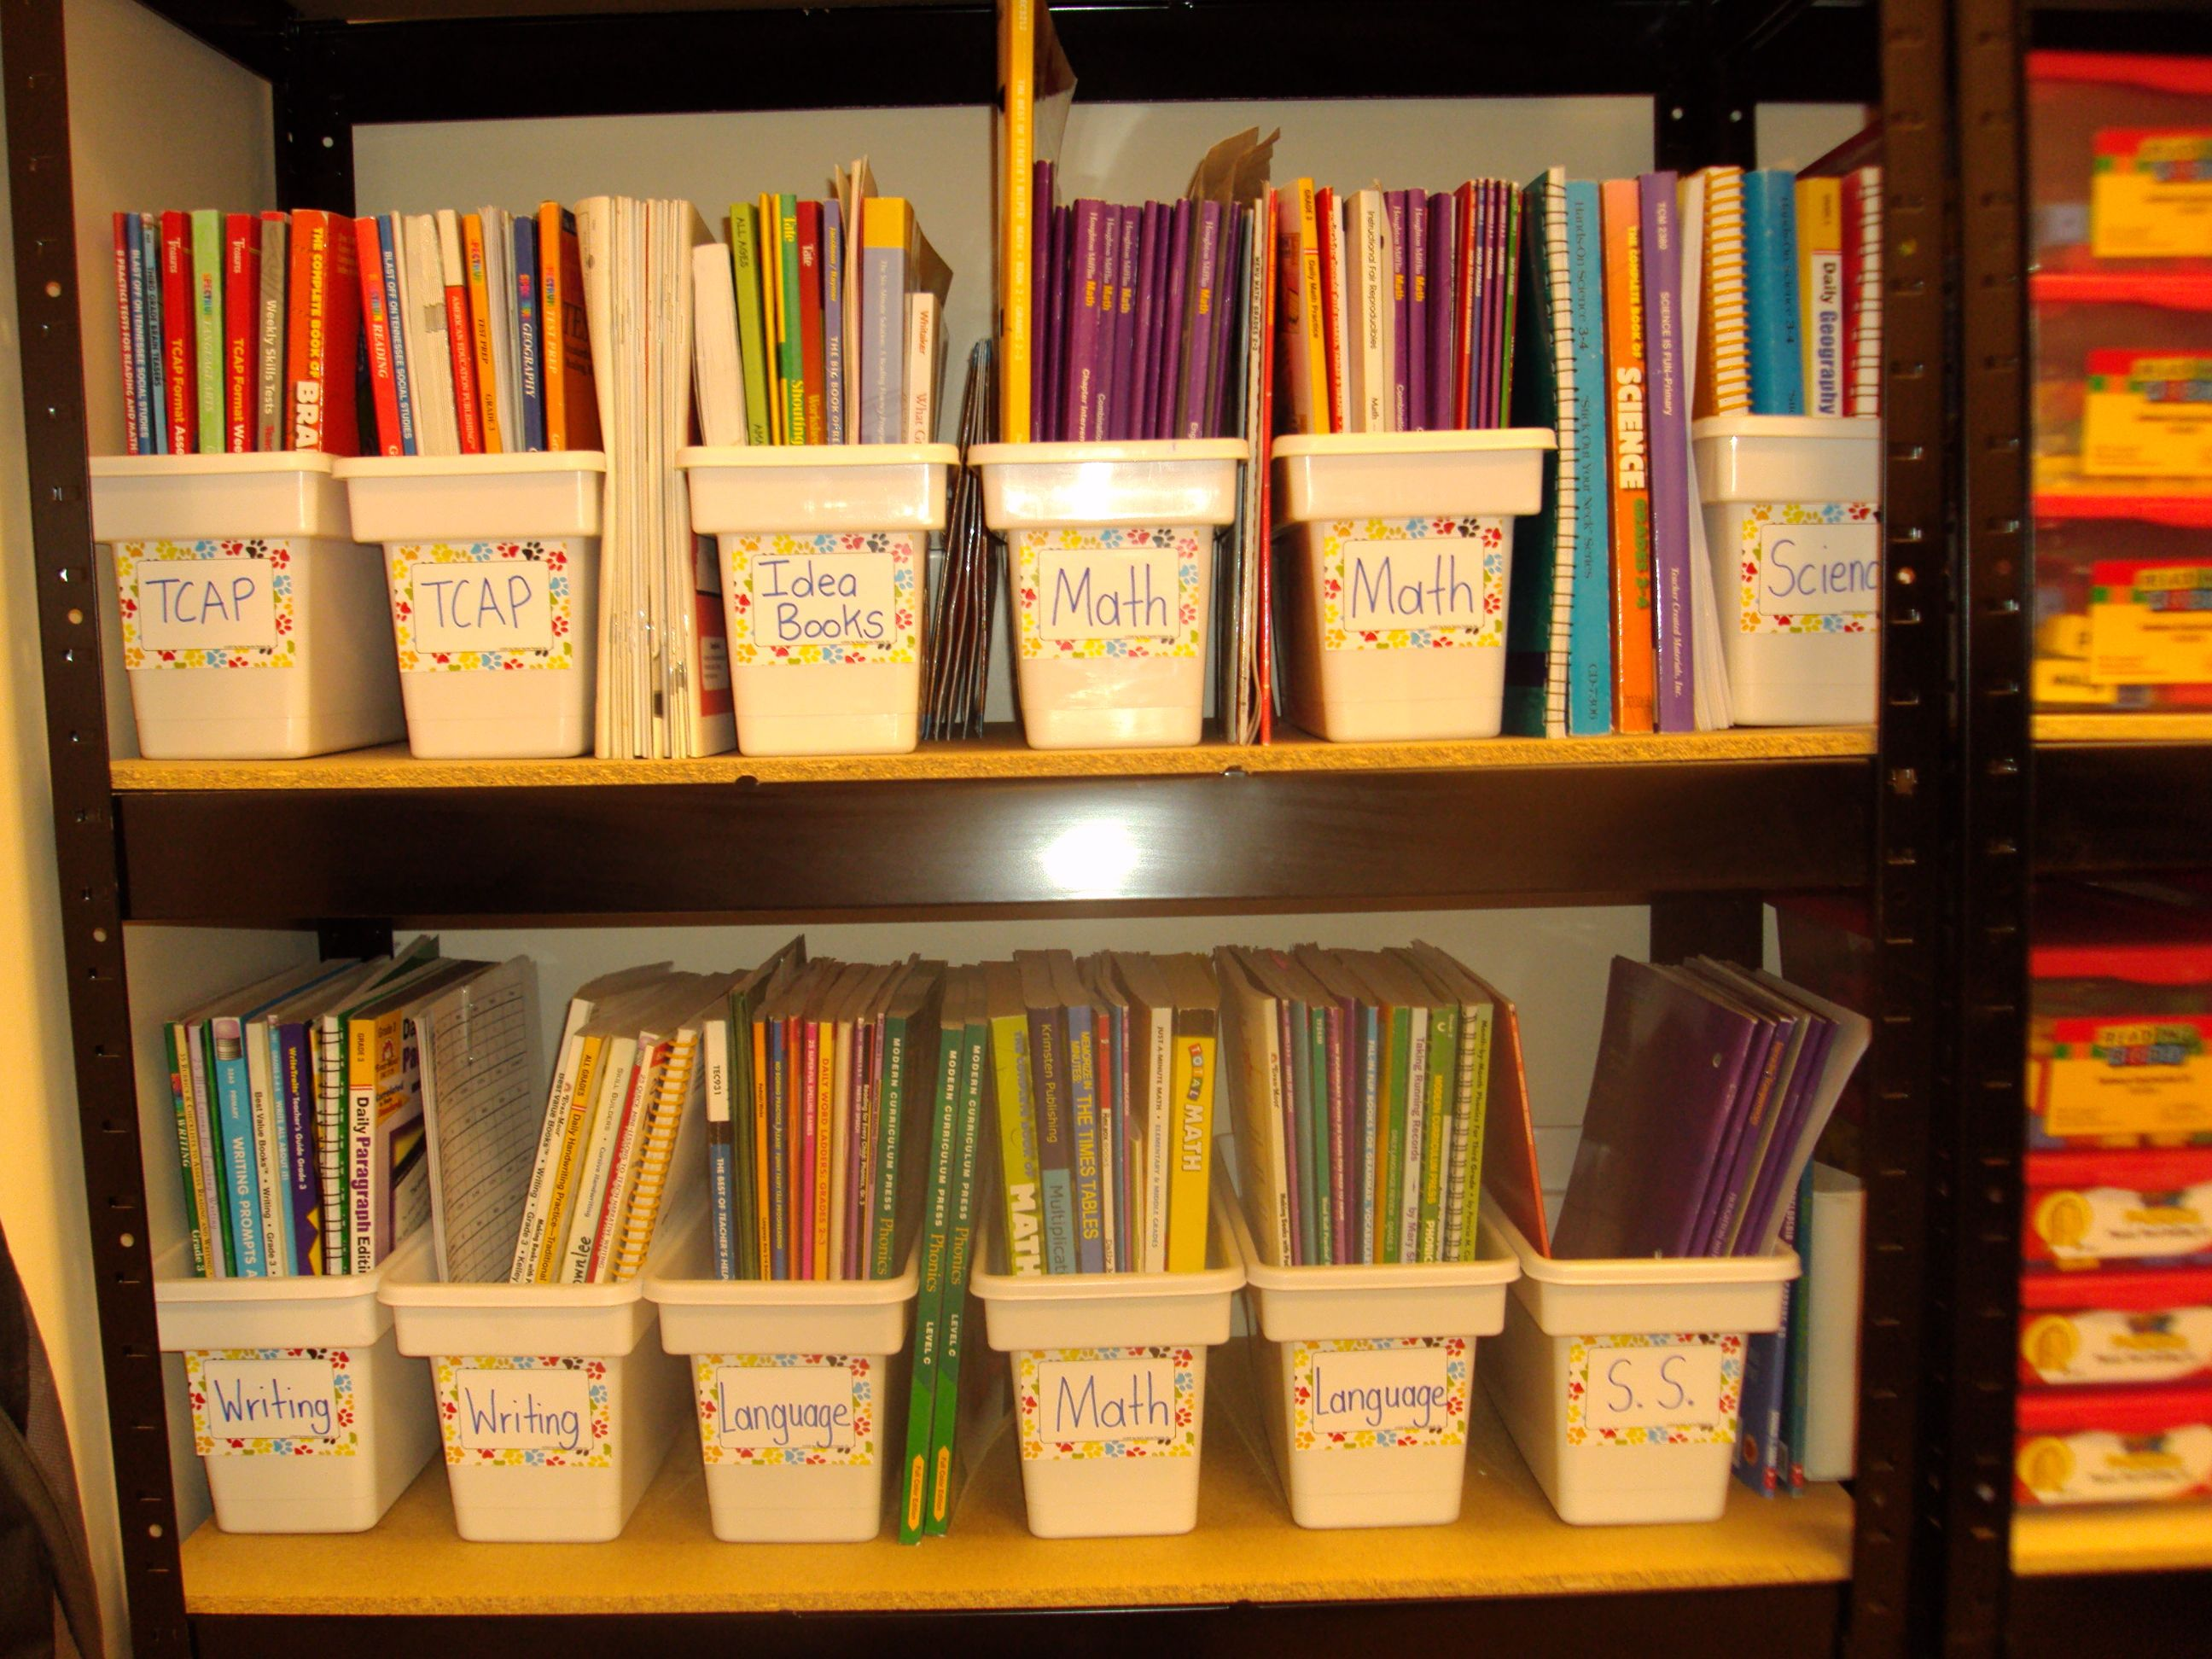 Wal-Mart ice bins for storage.  Great for book tubs! @Starla Harlow, I wonder how much these cost?